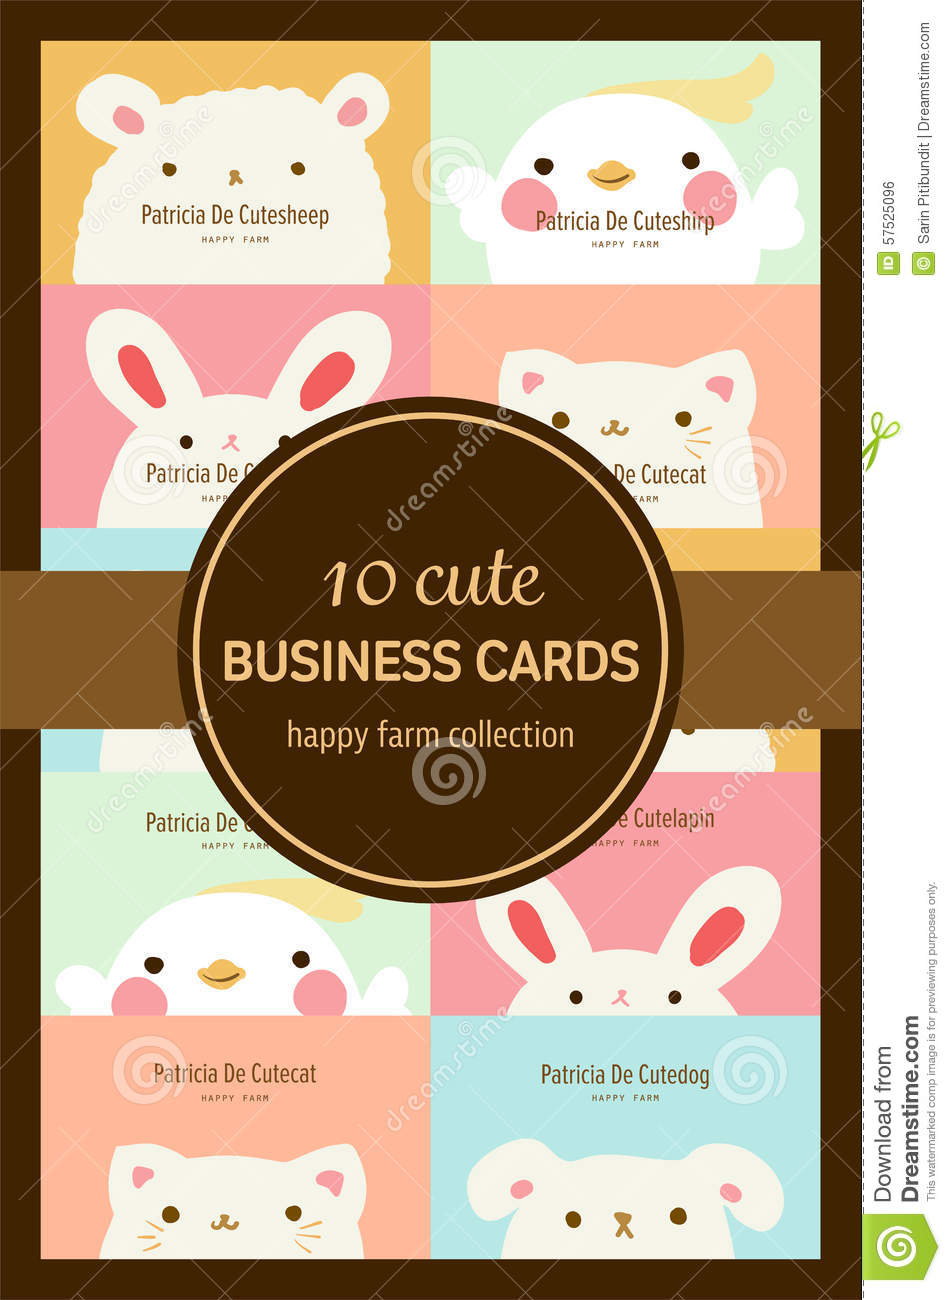 Business Cards In Shreveport La Choice Image Card Design And - Cute business cards templates free